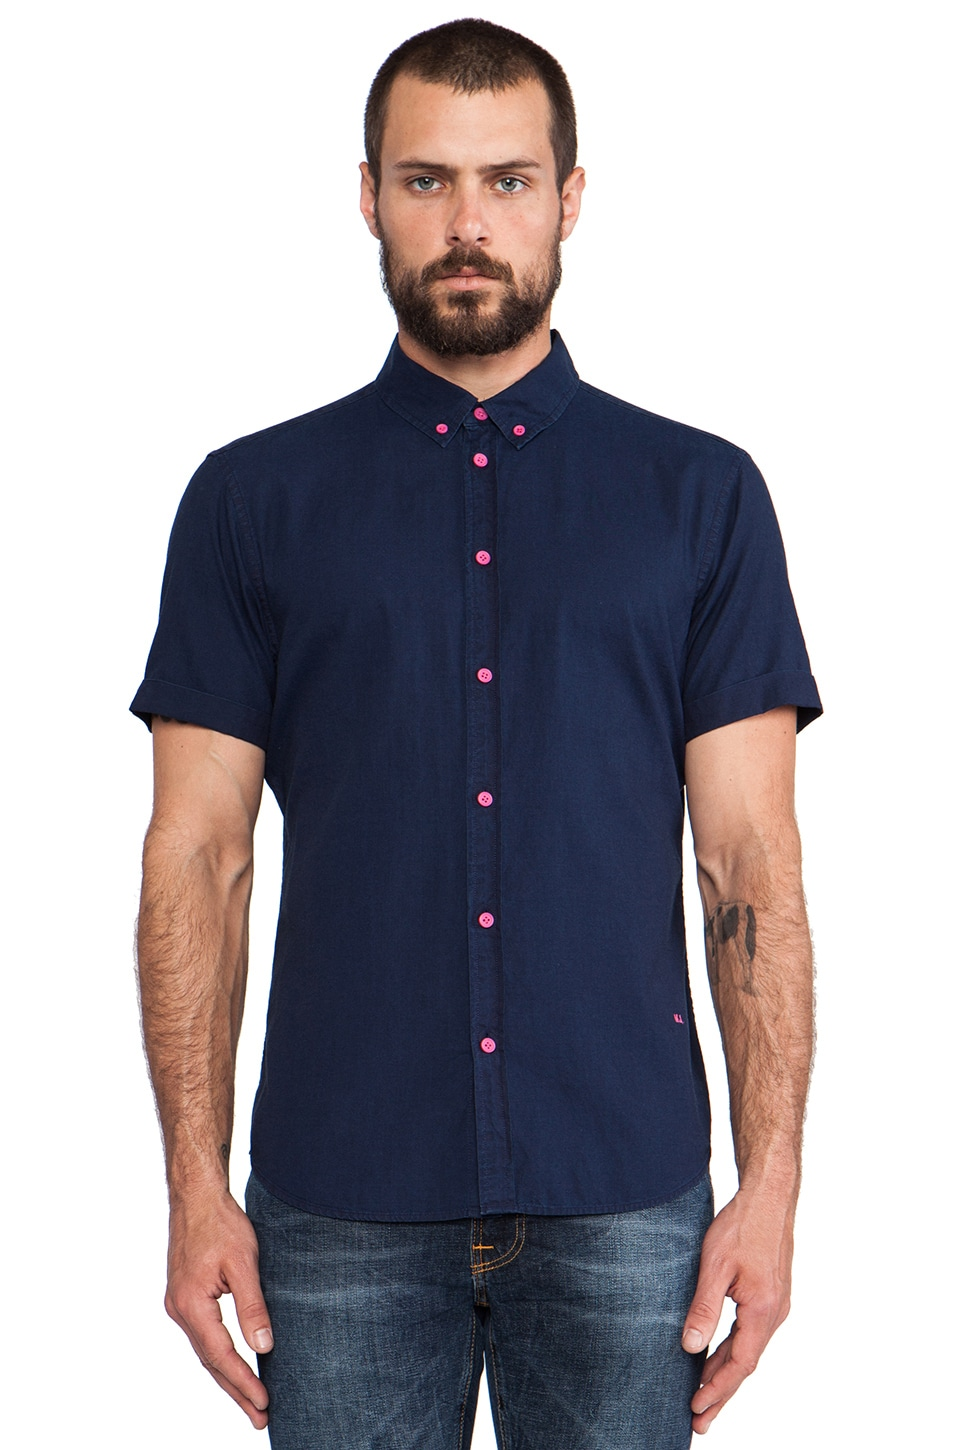 Marc by Marc Jacobs Indigo Oxford Short Sleeve Buttondown in Indigo